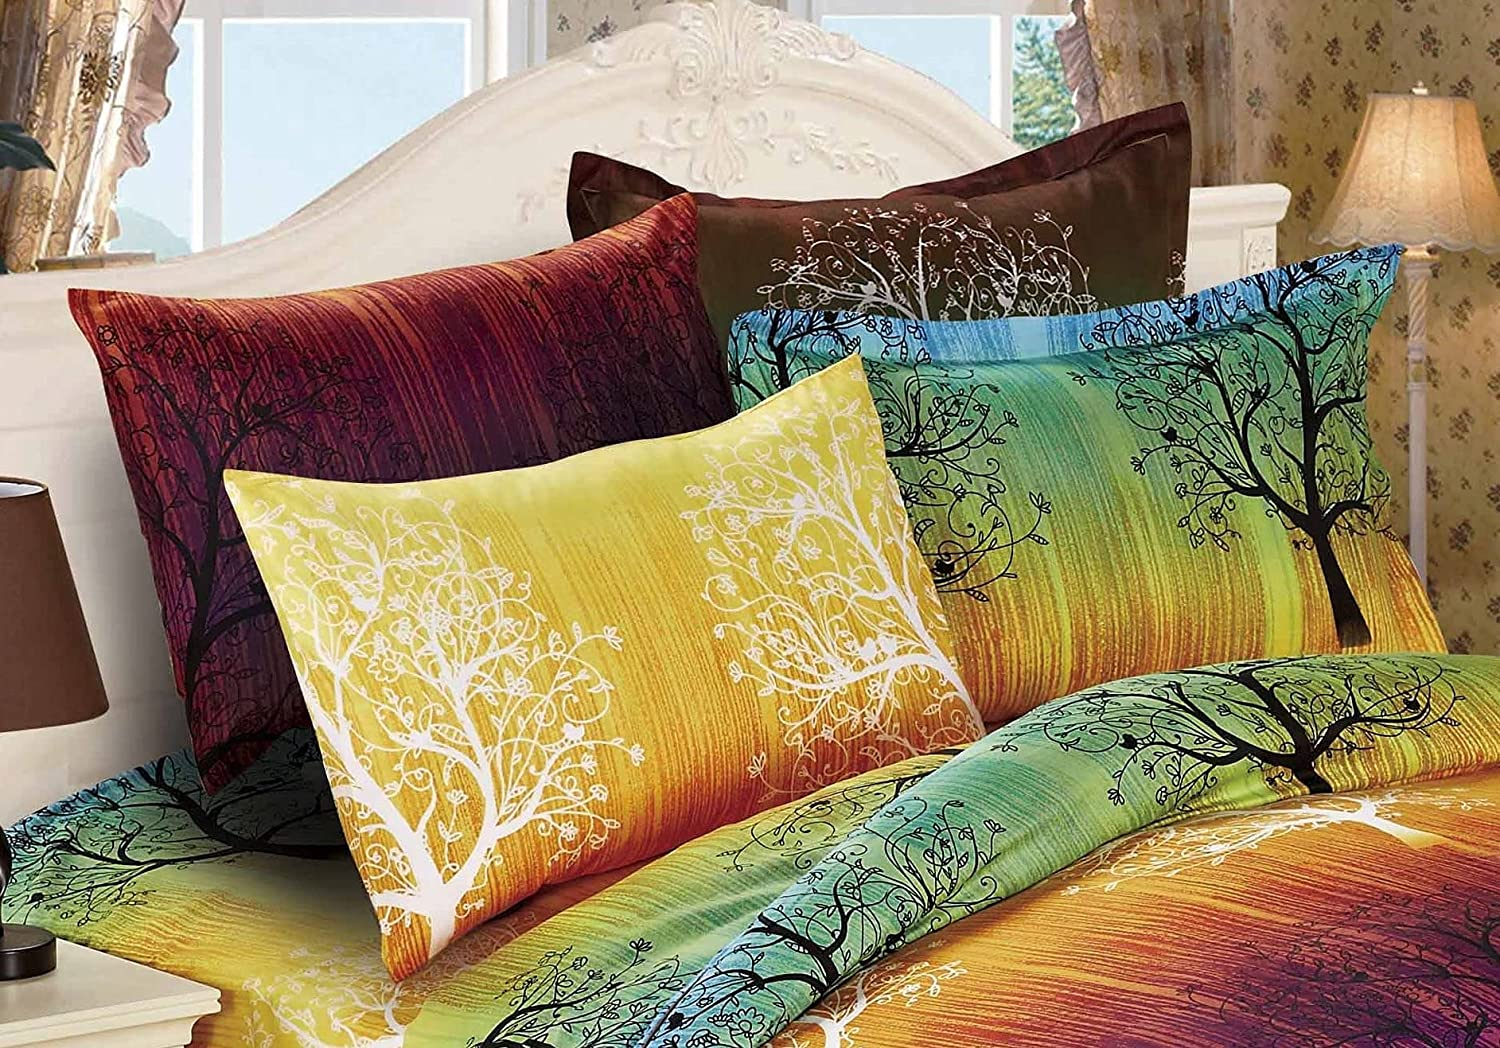 A Pair of Bargain sale Rainbow Topics on TV Tree Pillow Queen Shams Blue